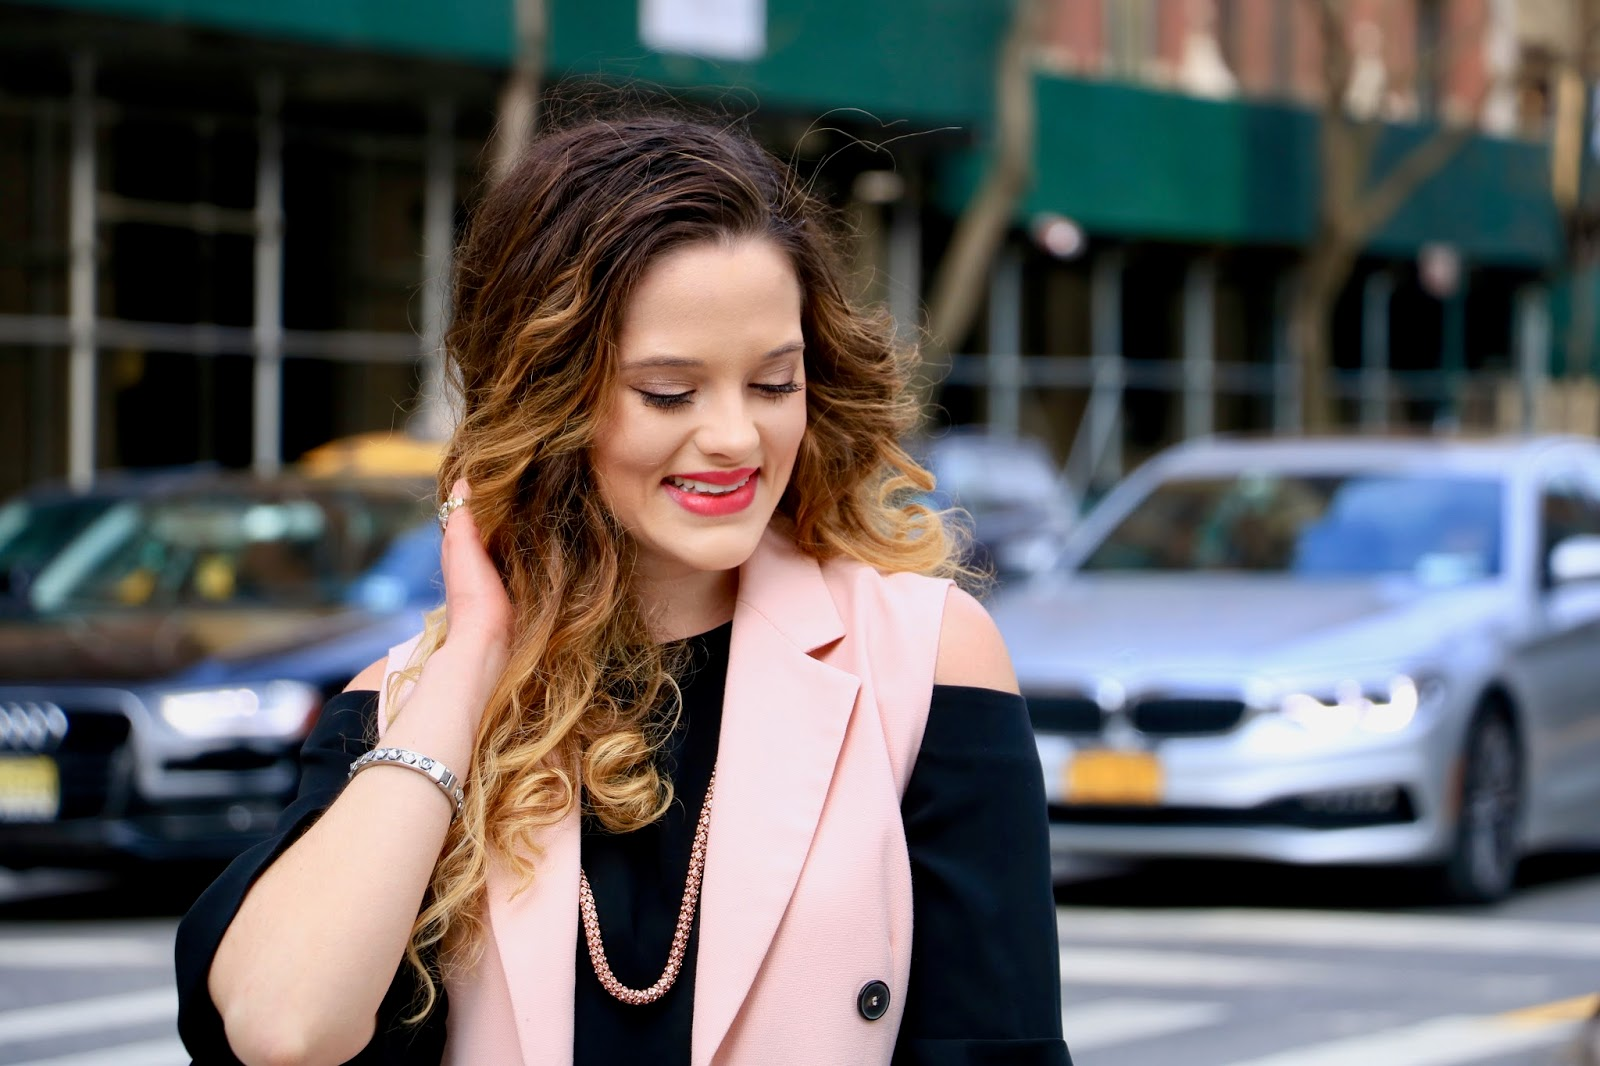 Nyc fashion blogger Kathleen Harper shows how to wear a sleeveless coat